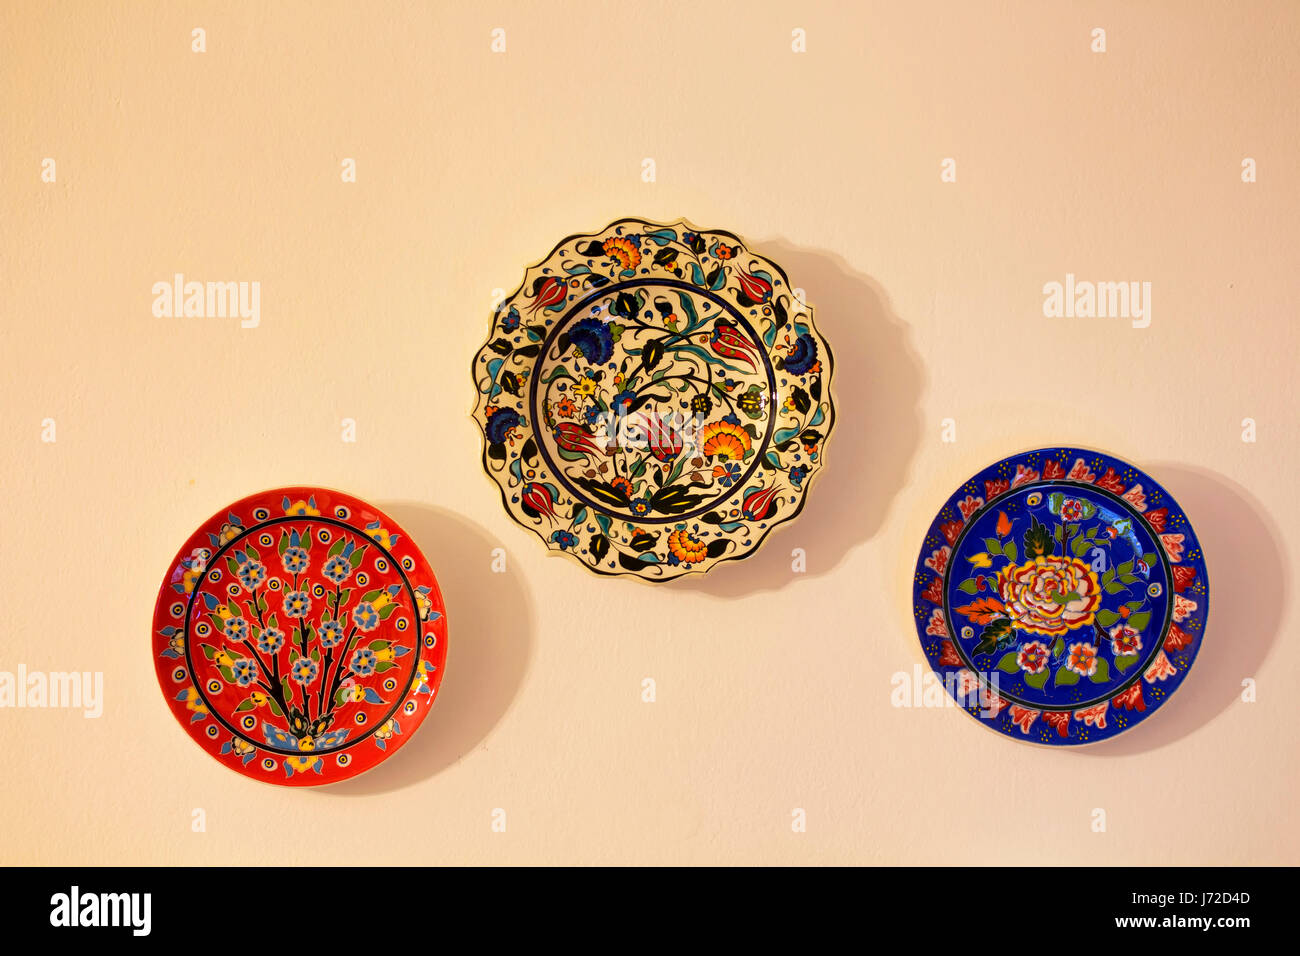 Colorful Art Ceramic Plates Stock Photos & Colorful Art